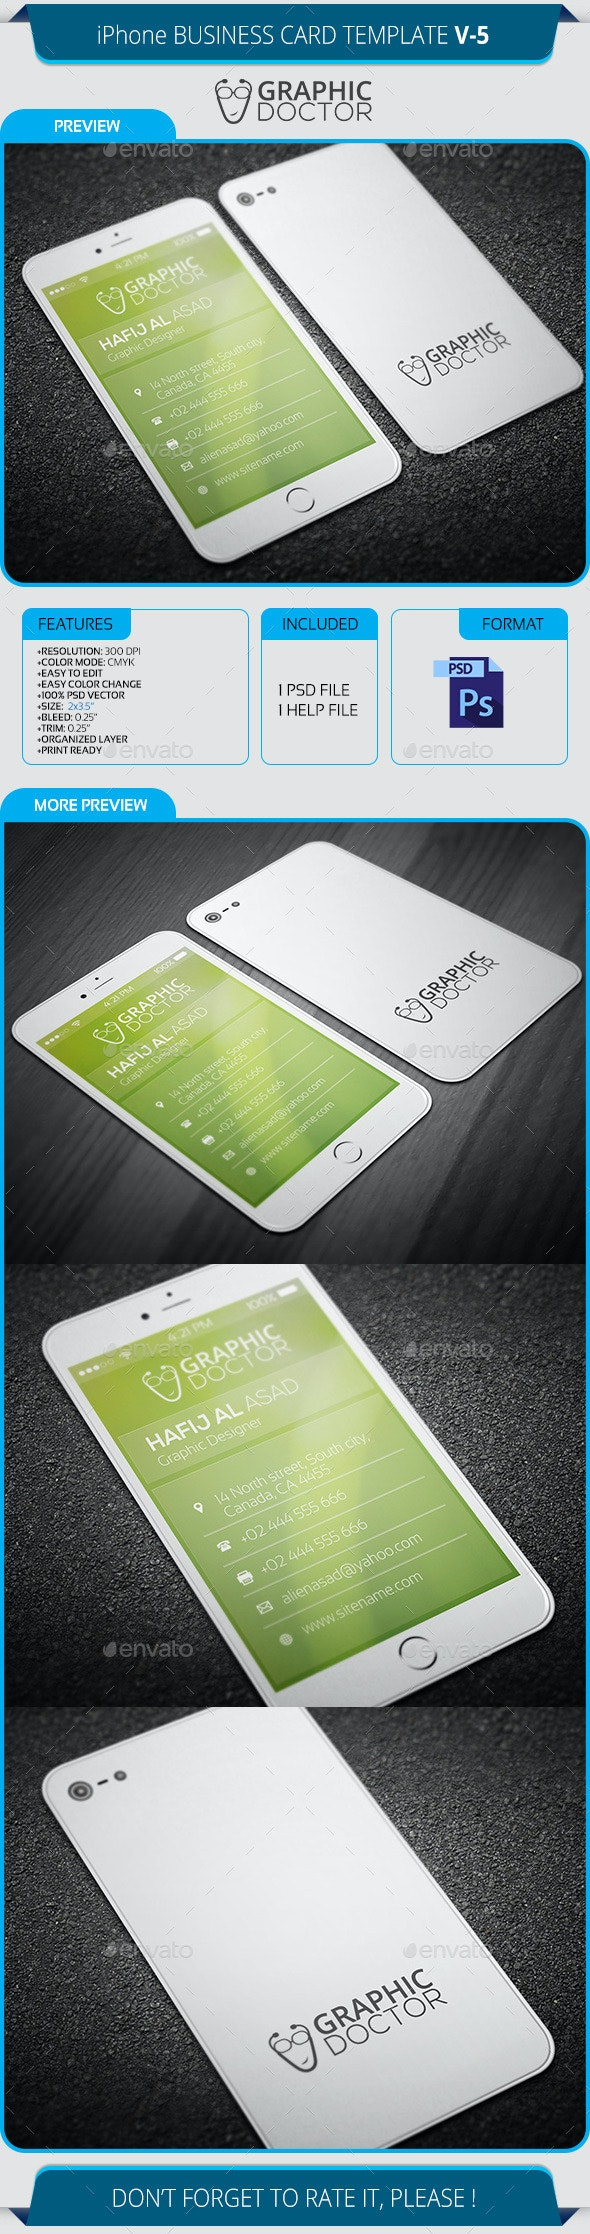 iPhone Business Card Template V-5 - Real Objects Business Cards